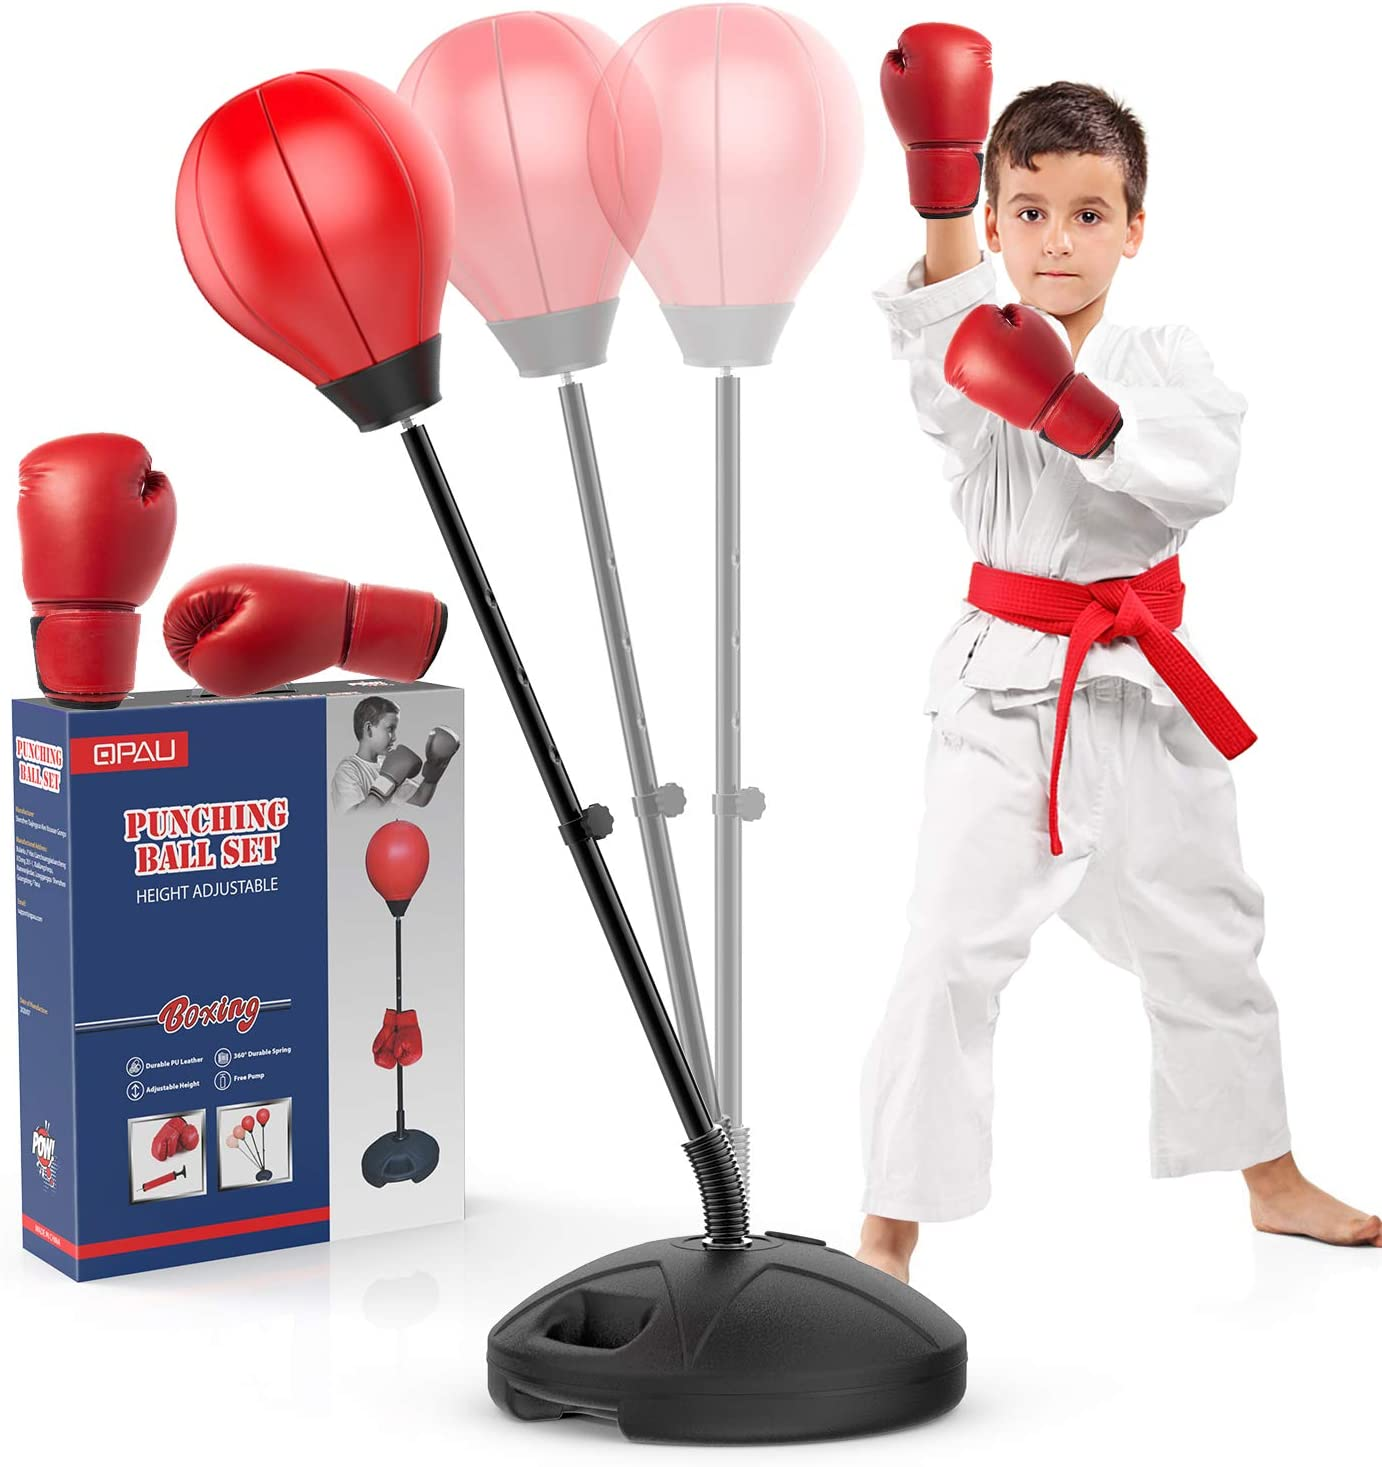 Kid plays with QPAU Standing Punching Bag for Kids